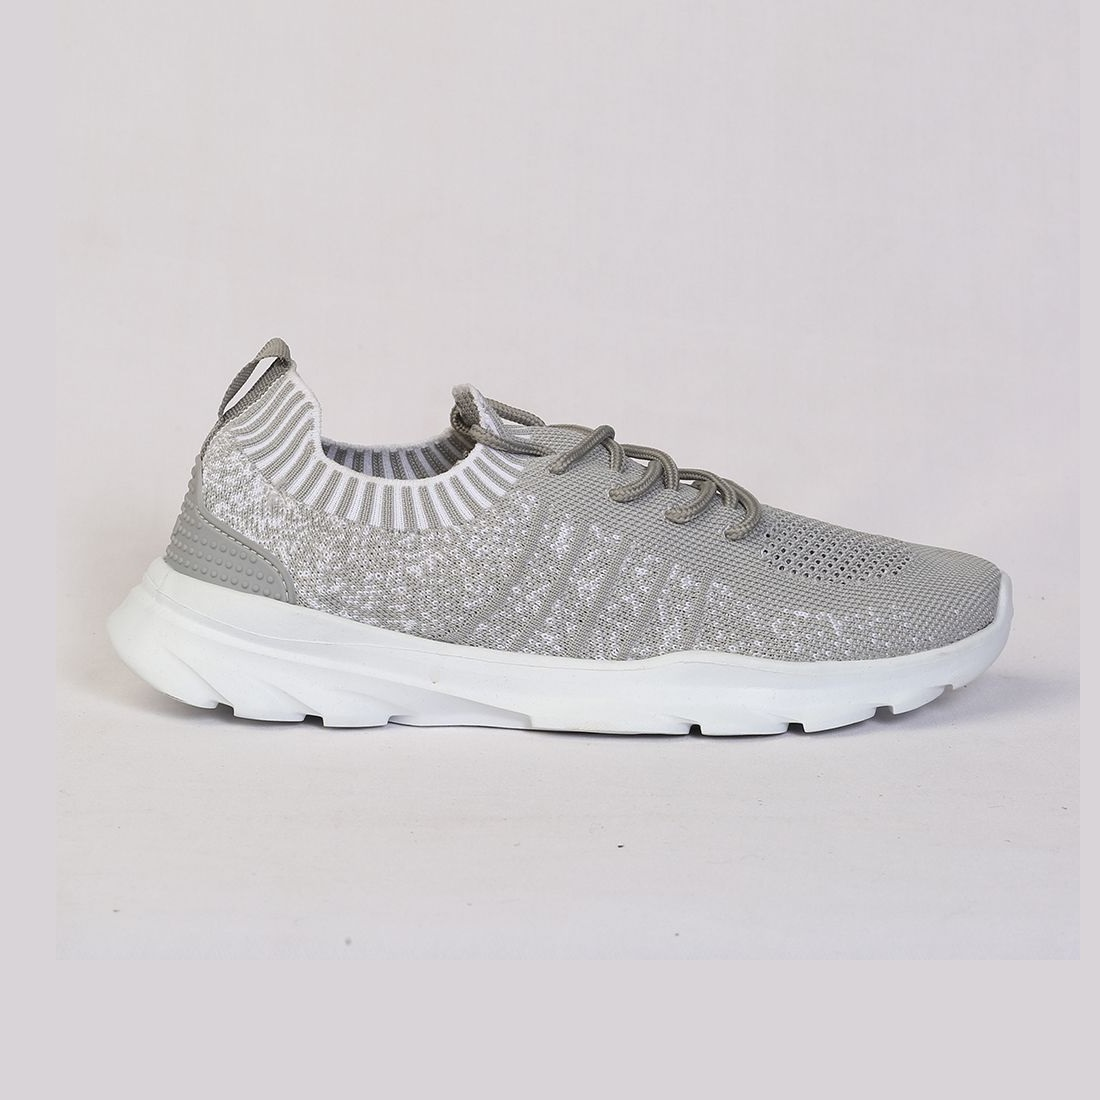 Goldstar Gray Casual Shoes For Women - G10 L651